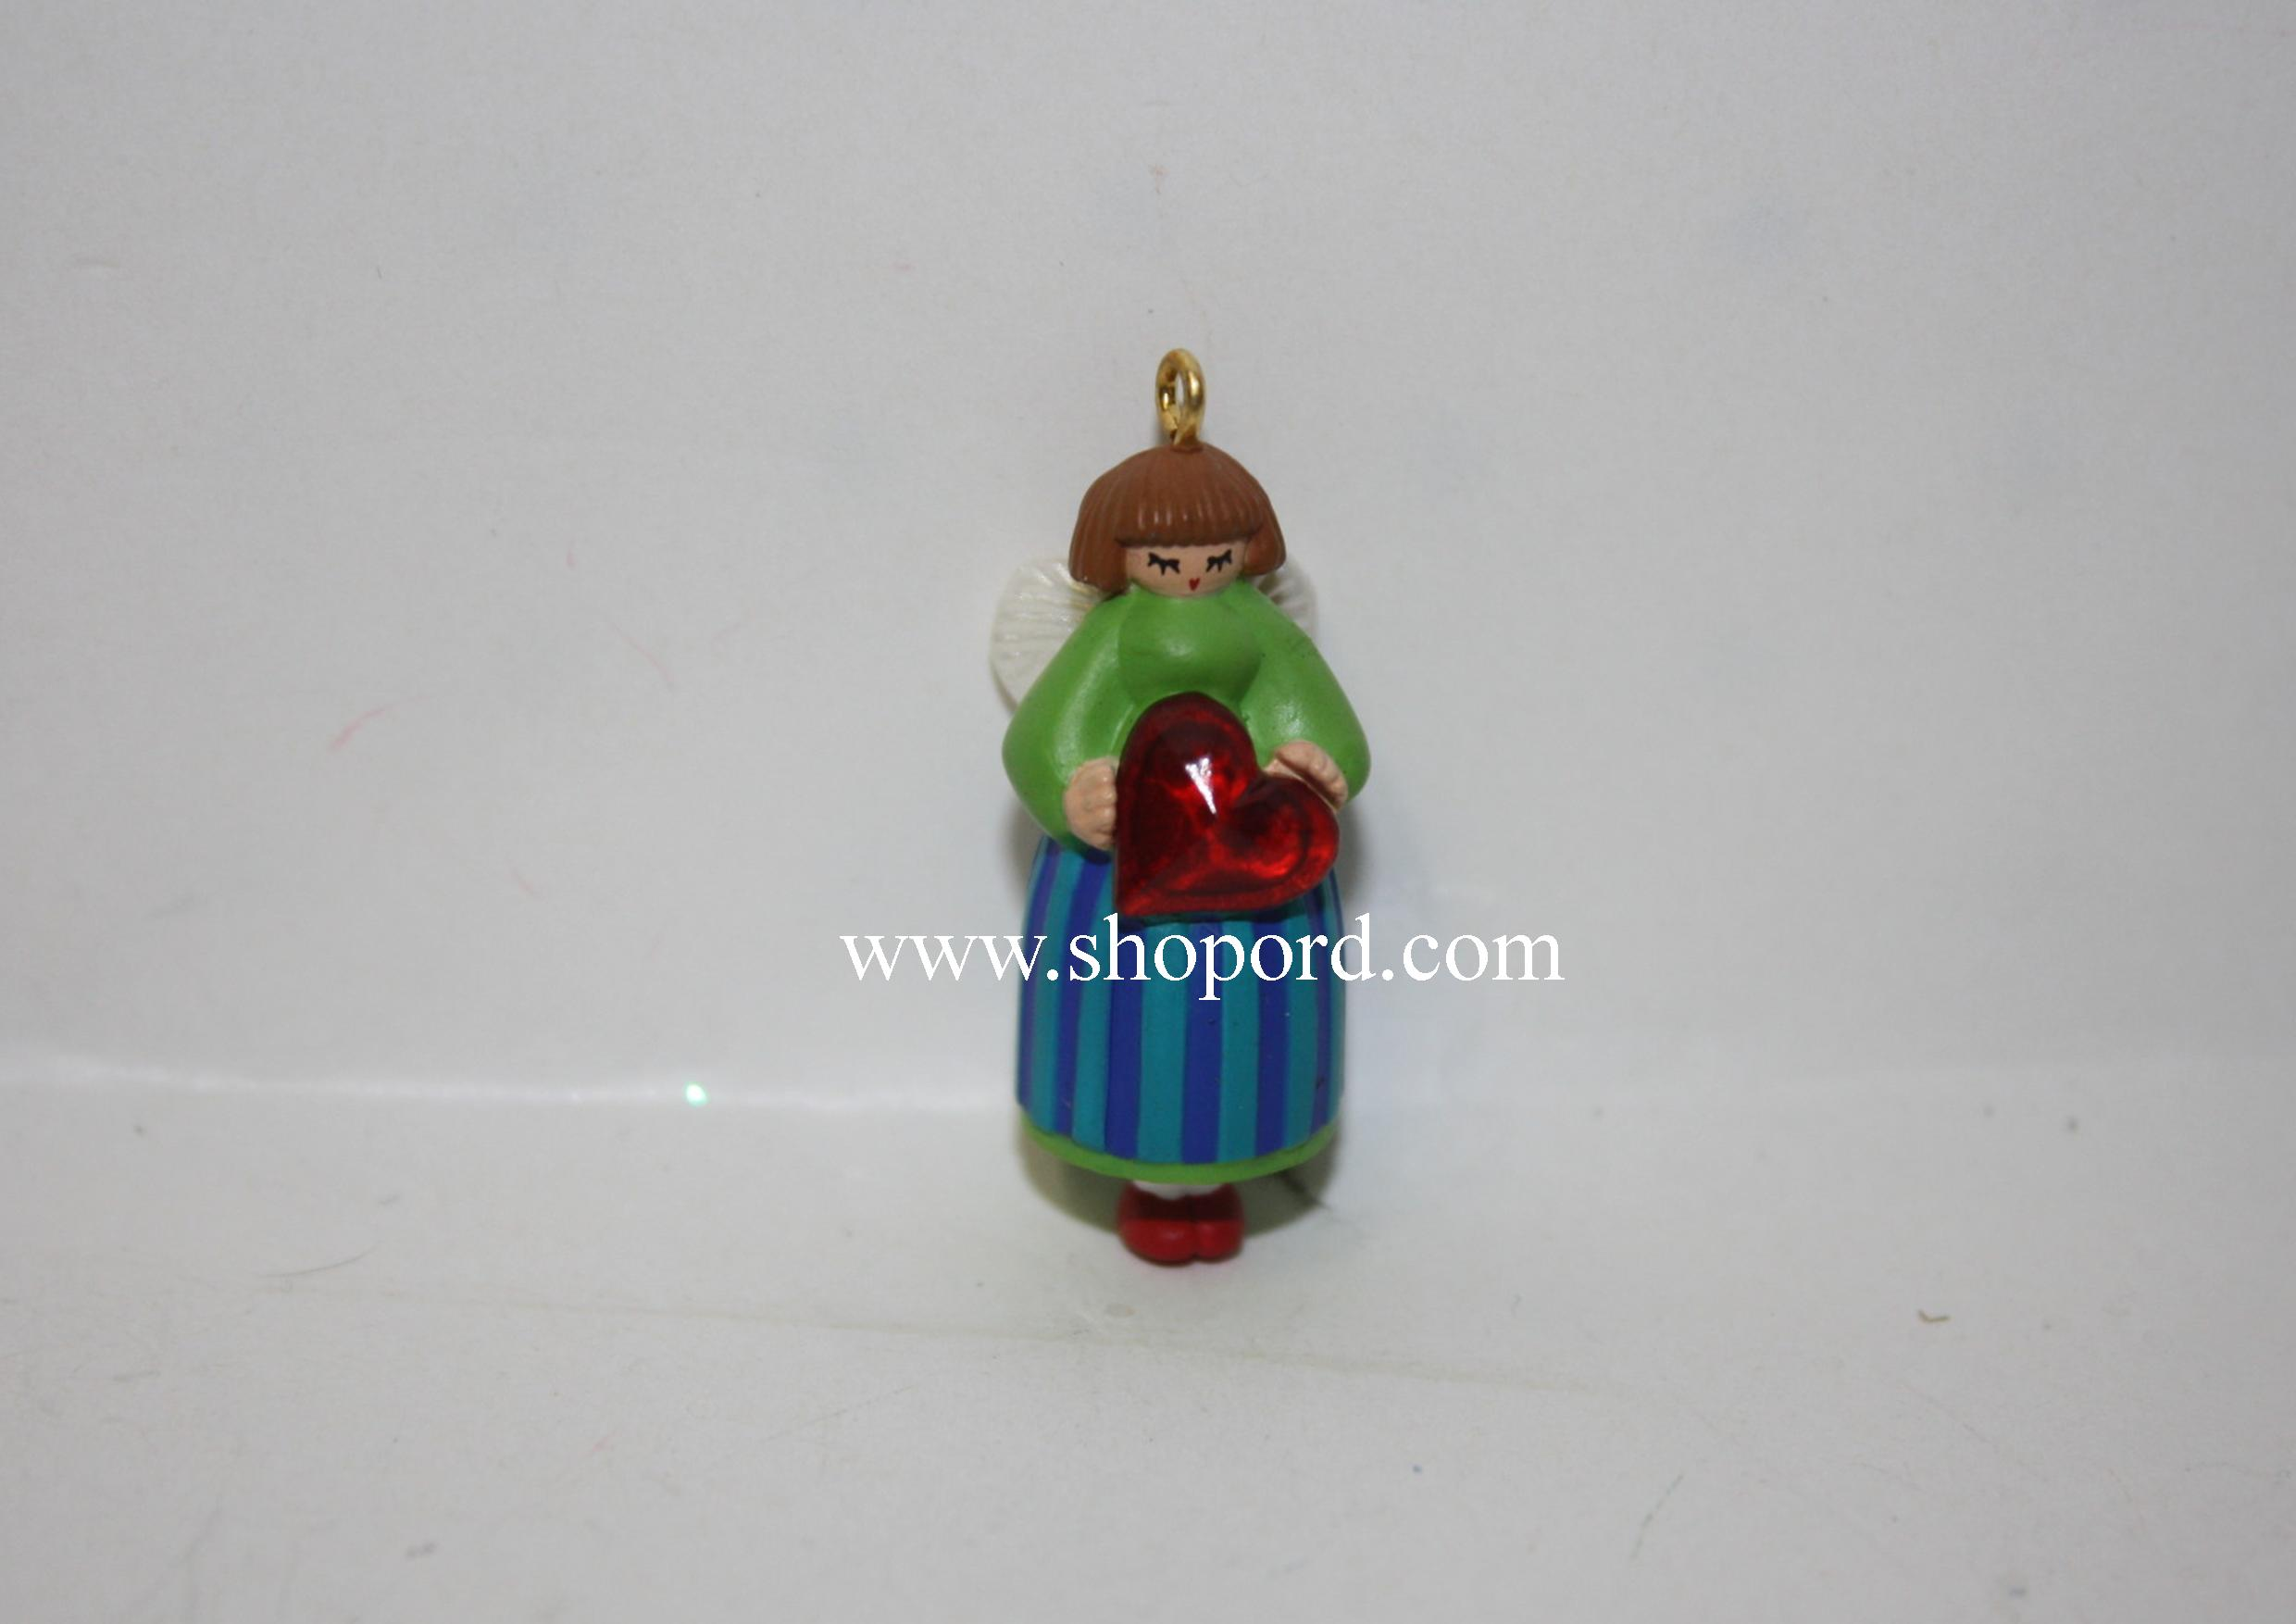 Hallmark 1999 Love To Share Miniature Ornament QXM4557